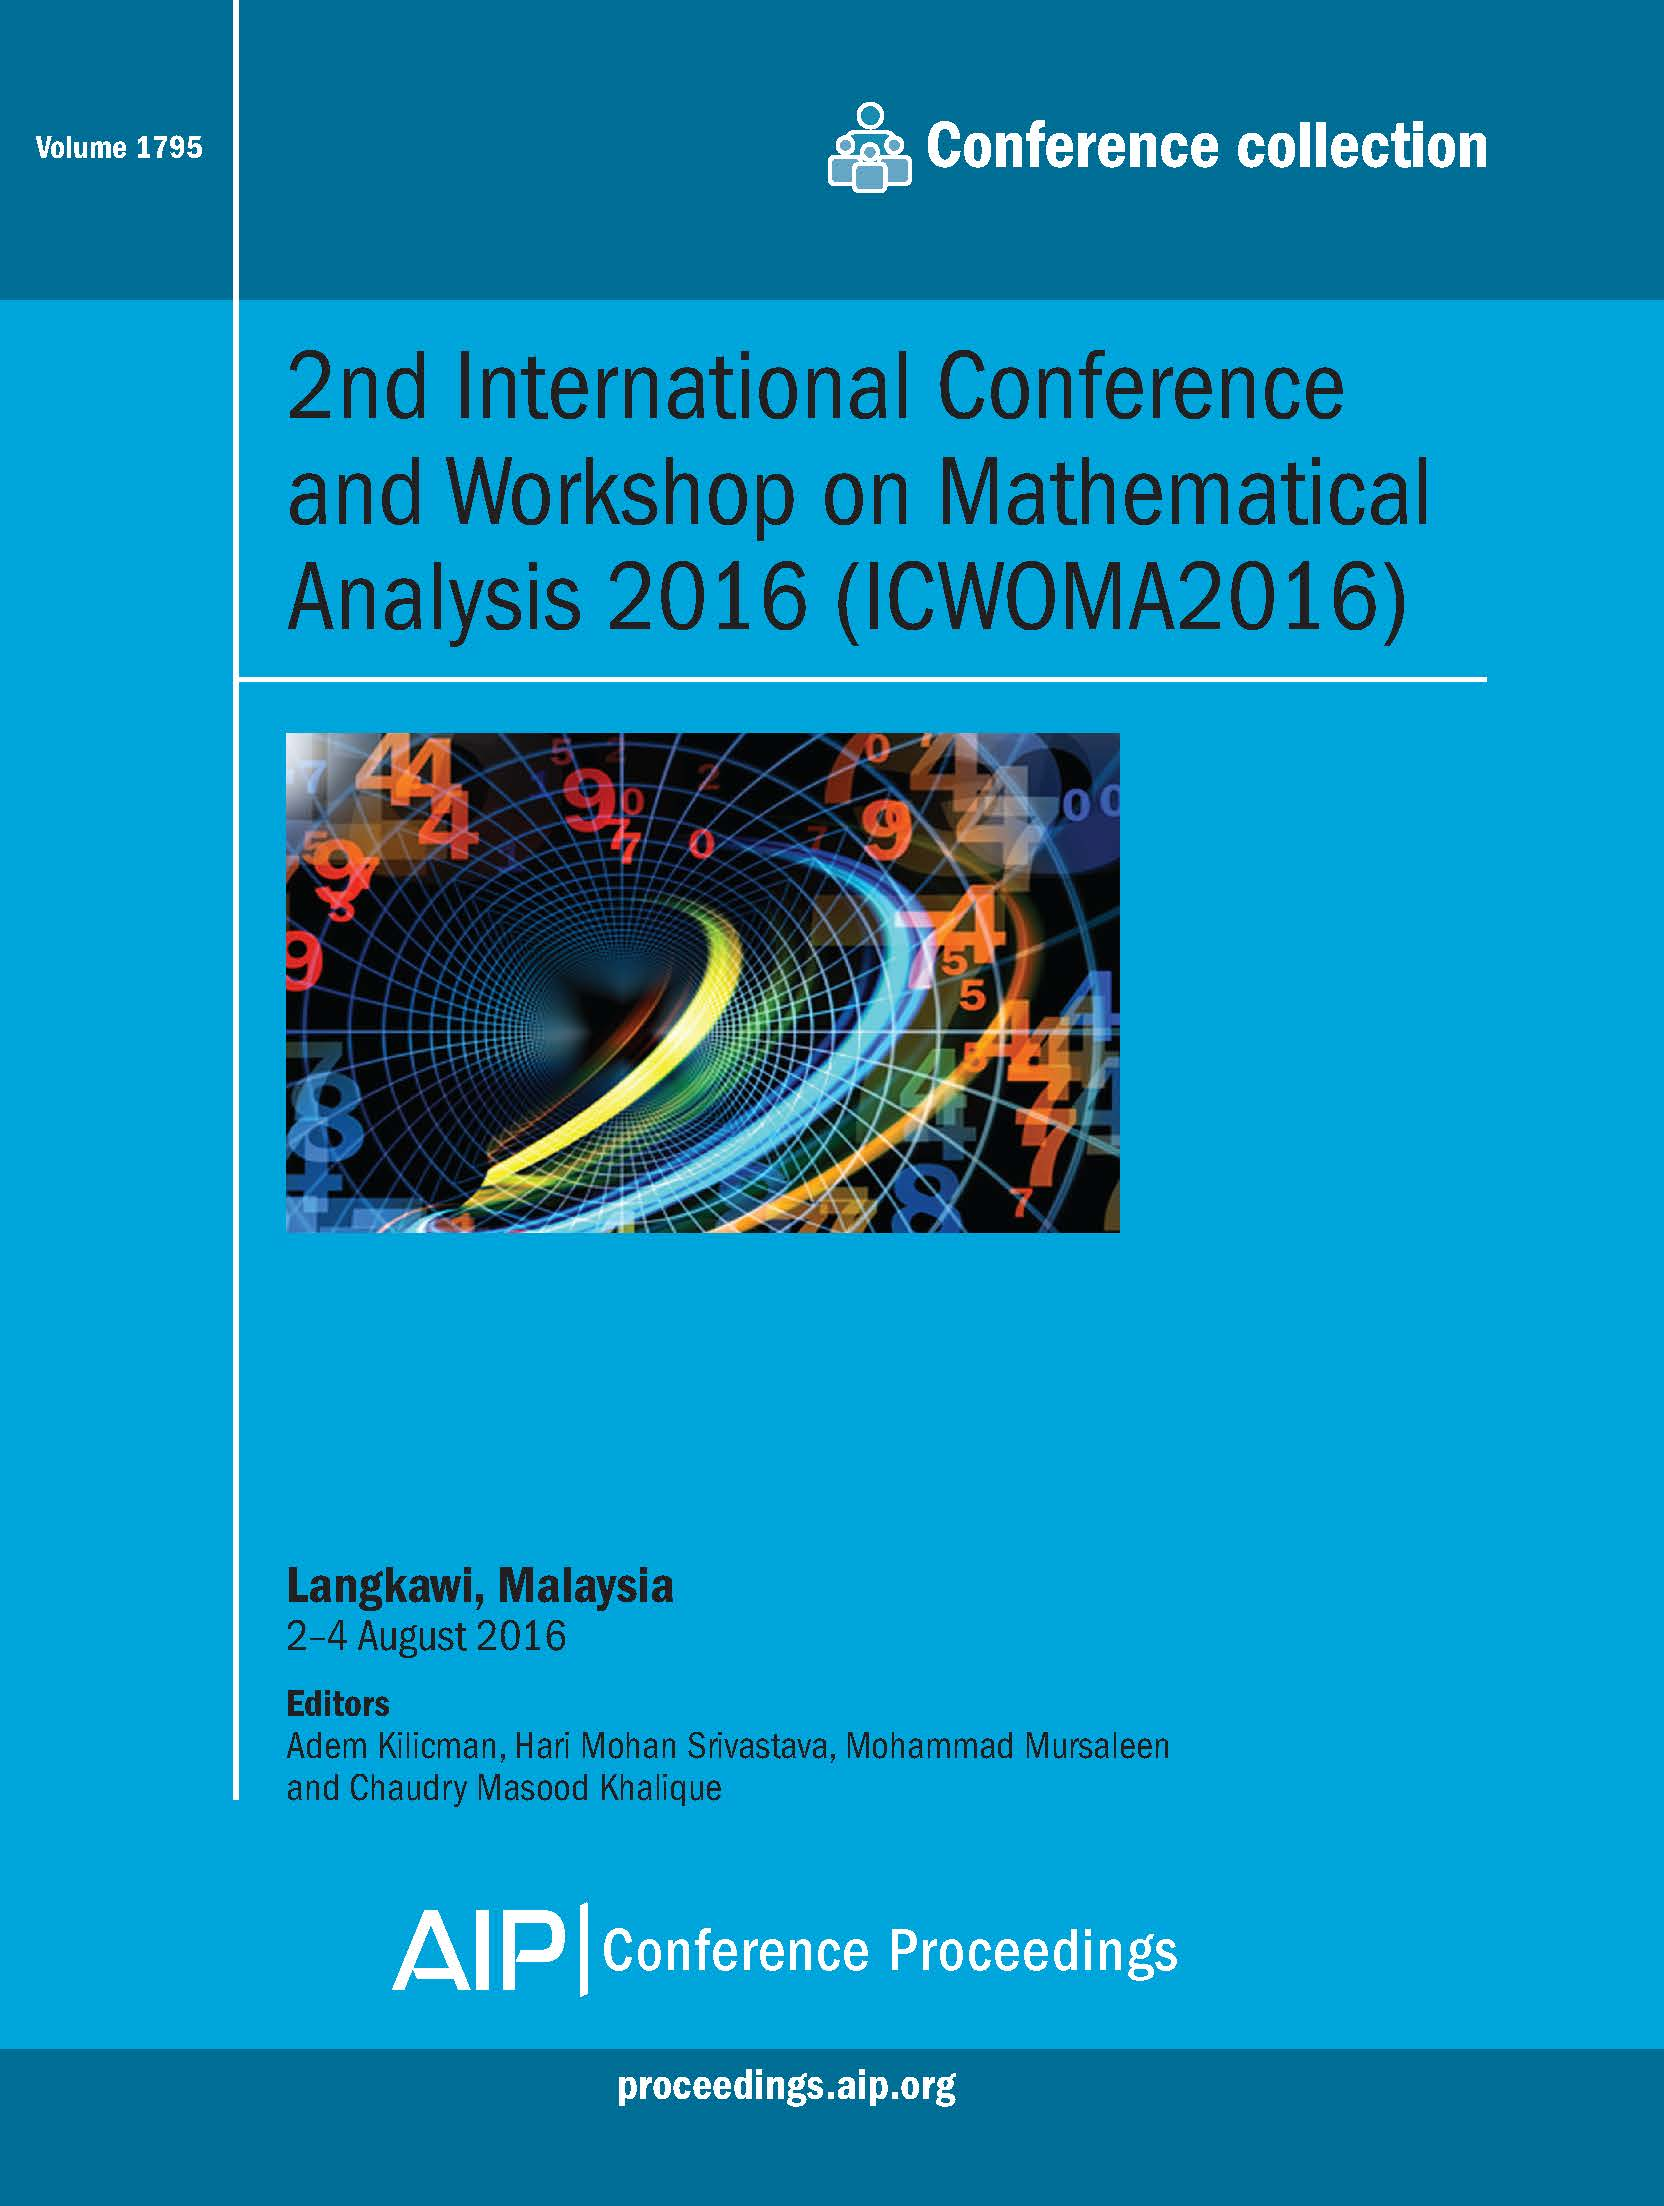 Volume 1795: 2nd International Conference and Workshop on